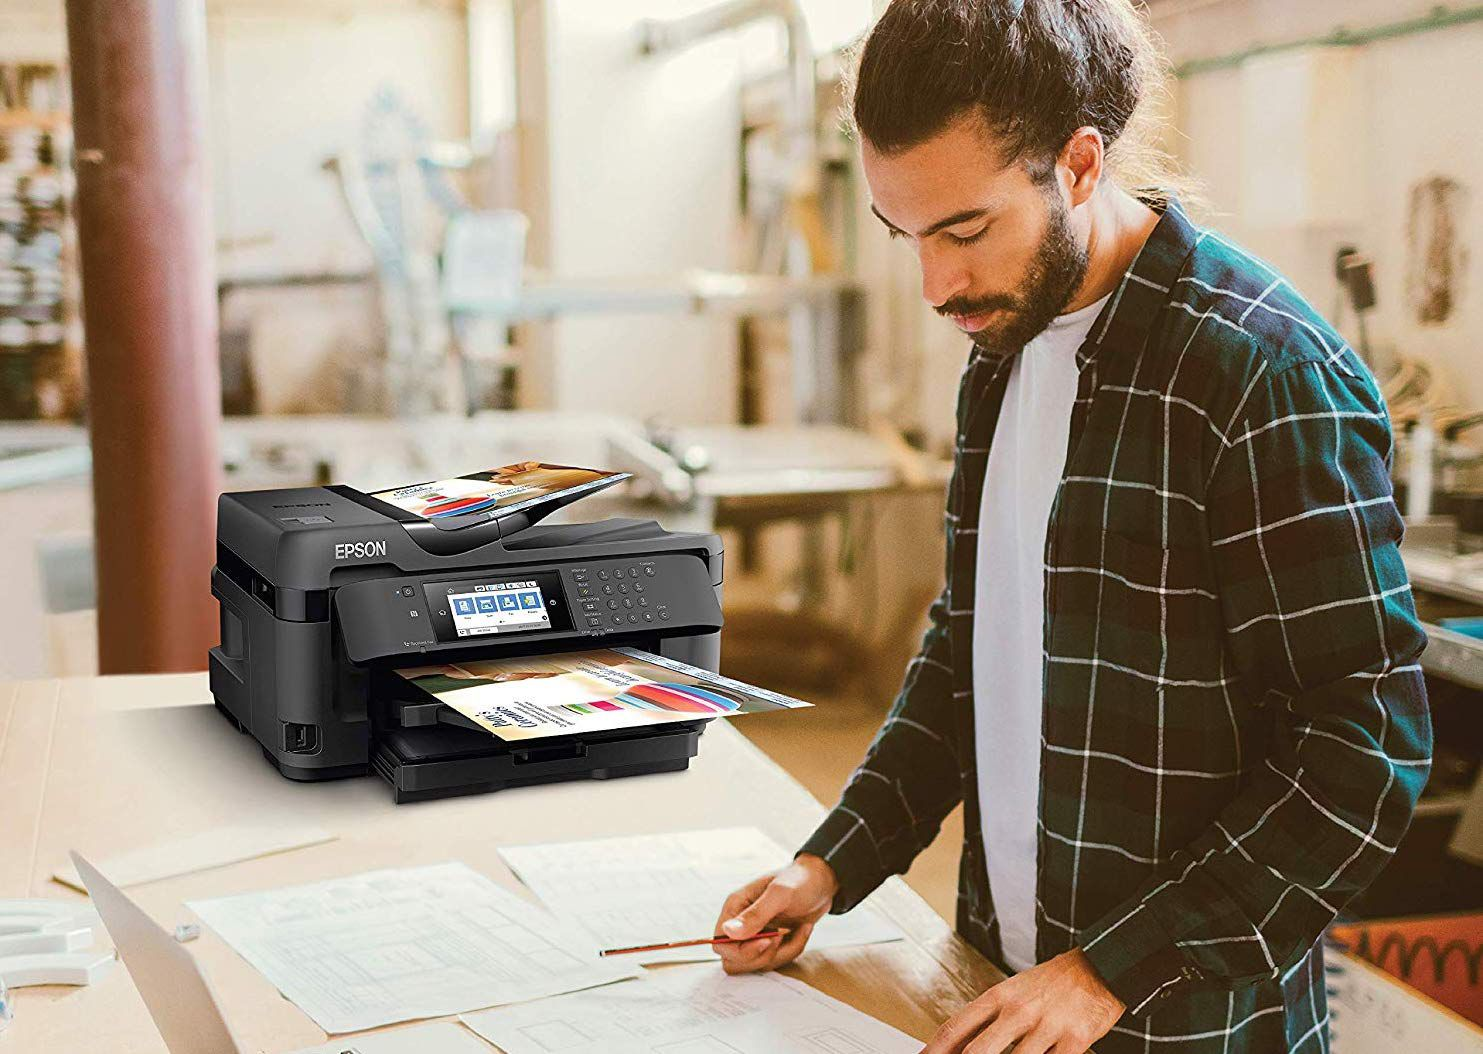 The 8 Best Sublimation Printers of 2019